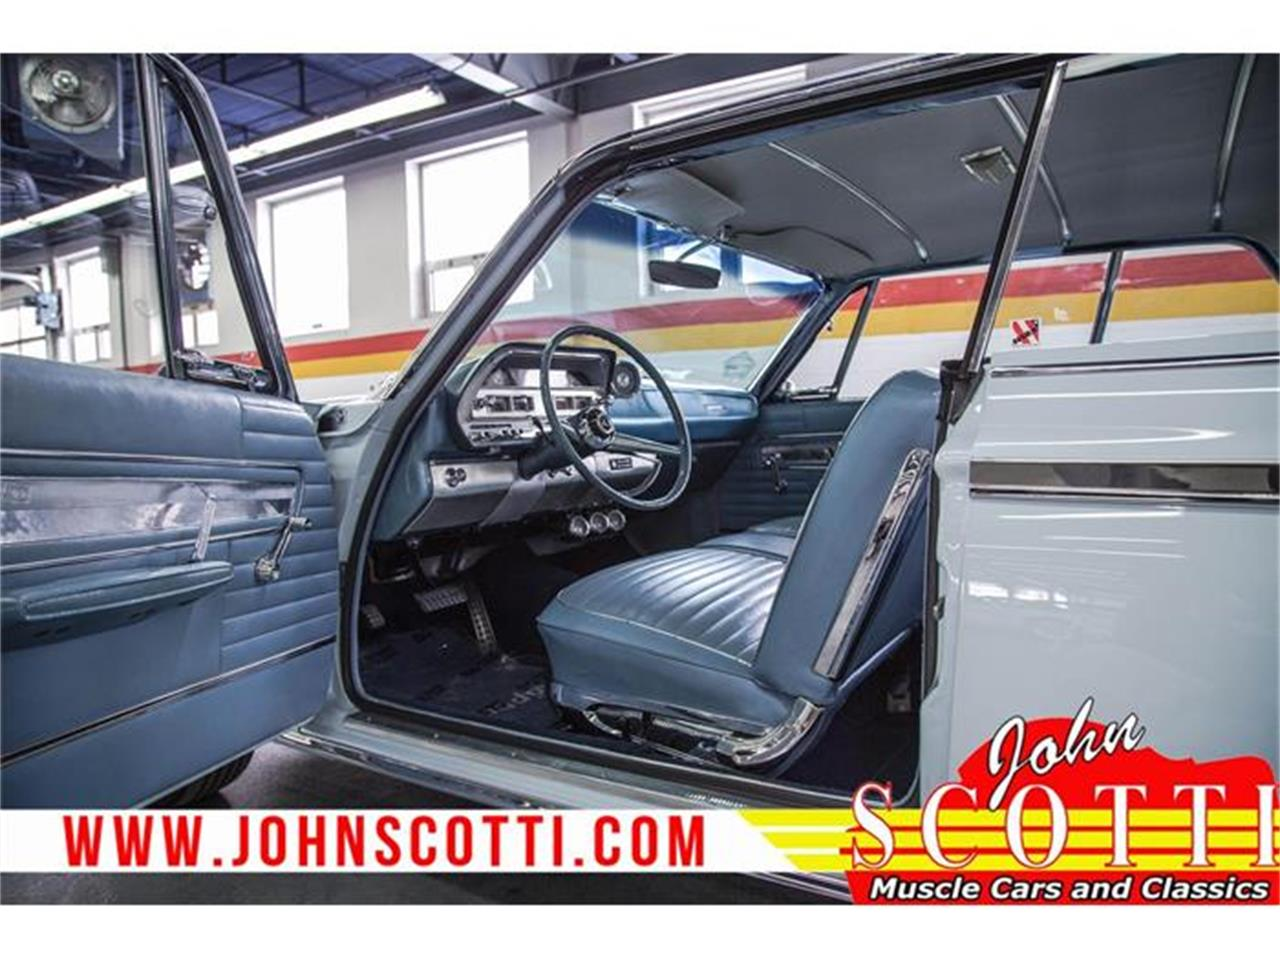 Large Picture of 1963 Dodge Polara located in Montreal Quebec - $54,500.00 Offered by John Scotti Classic Cars - GA0M